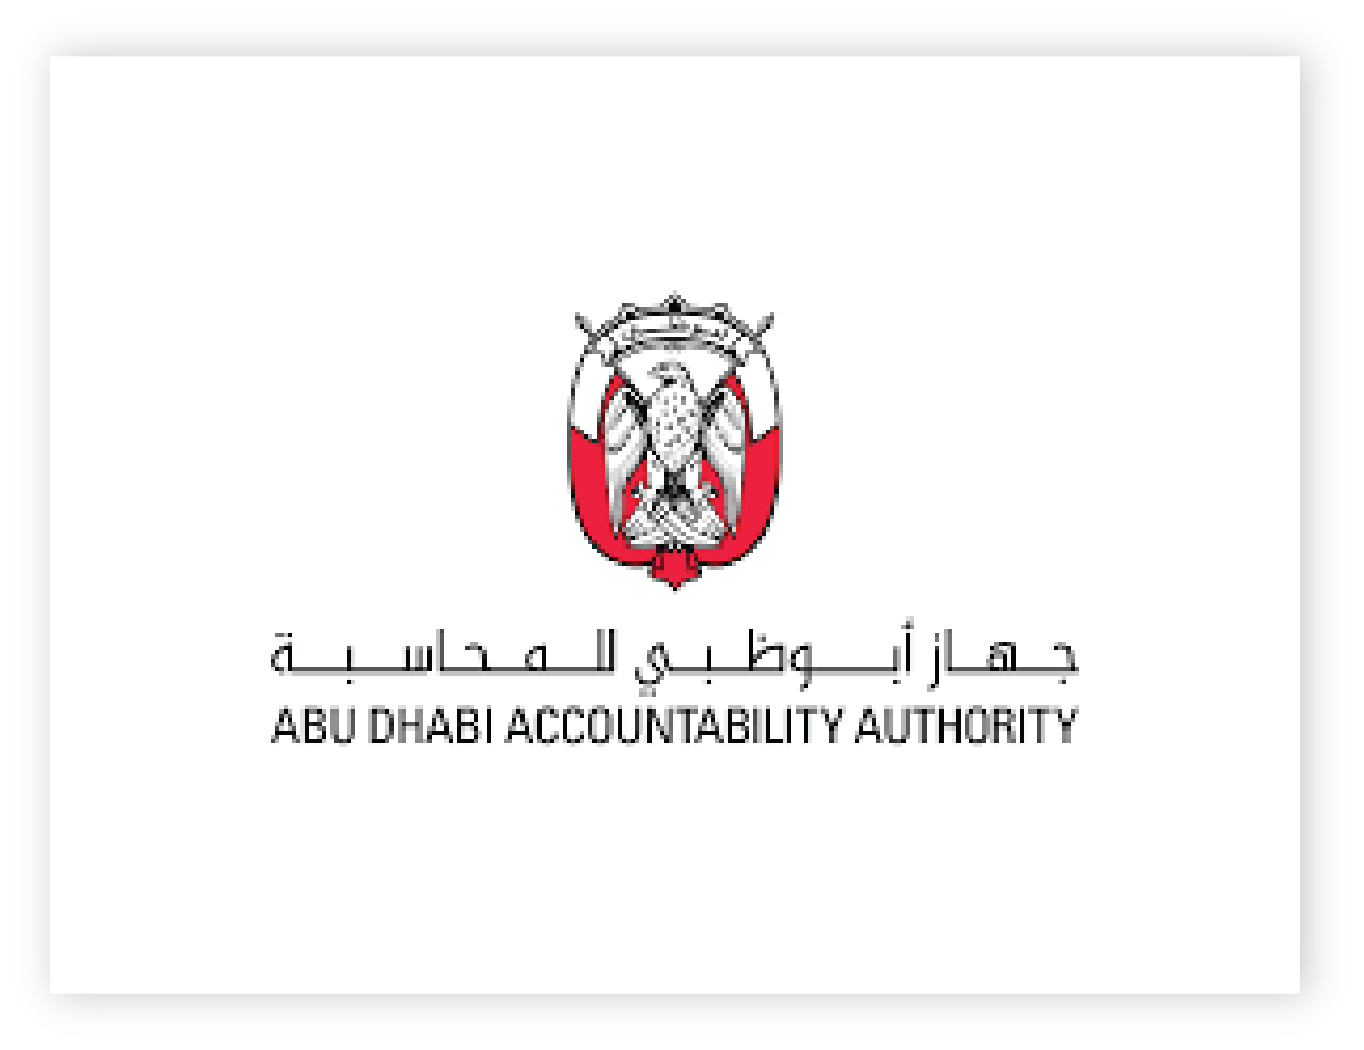 Abu Dhabi Accountability